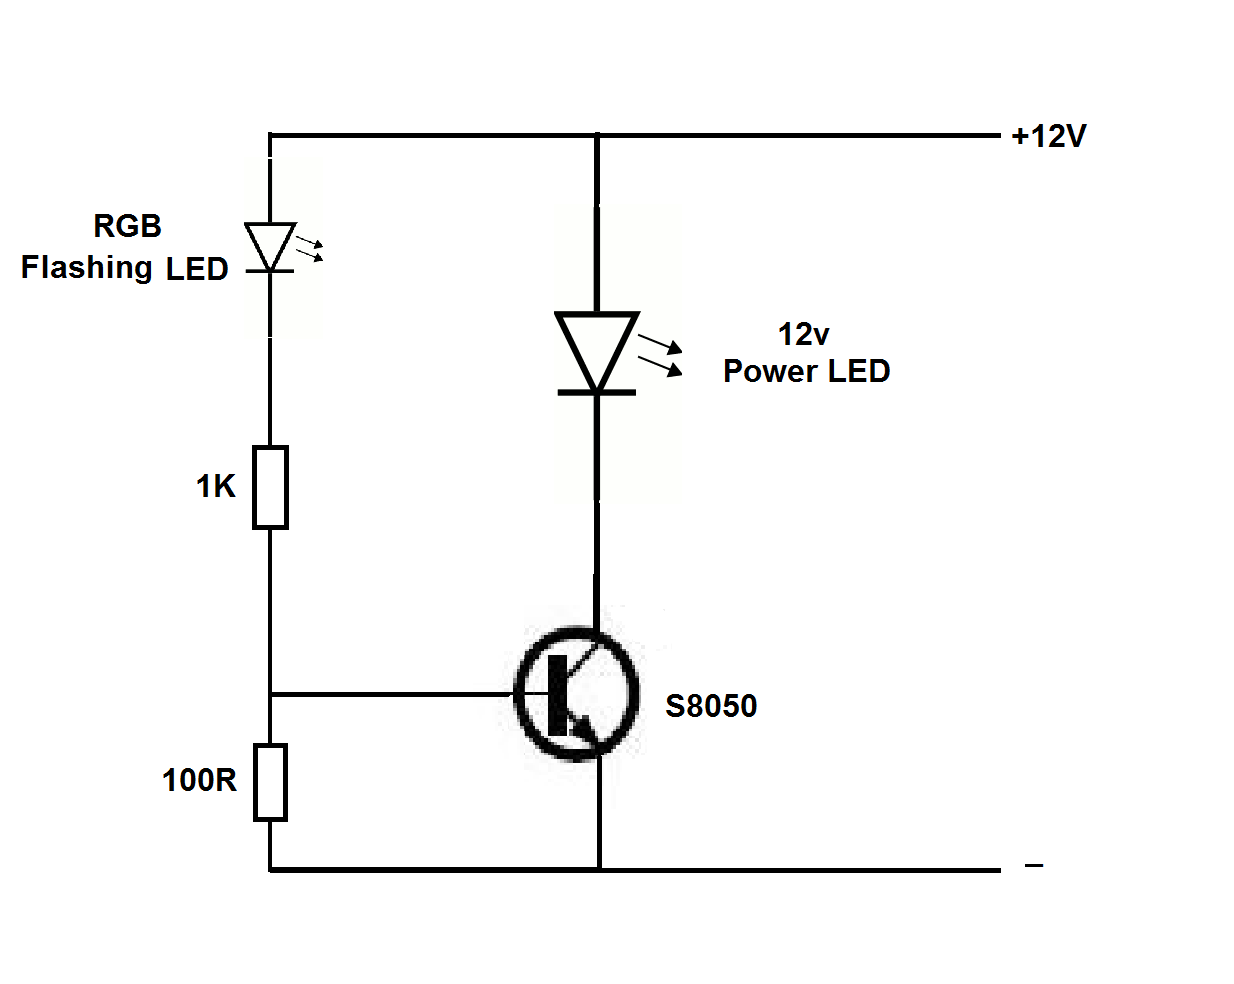 hight resolution of flasher 2busing 2bflashing 2bled 12v power led flasher circuit using led flasher wiring diagram